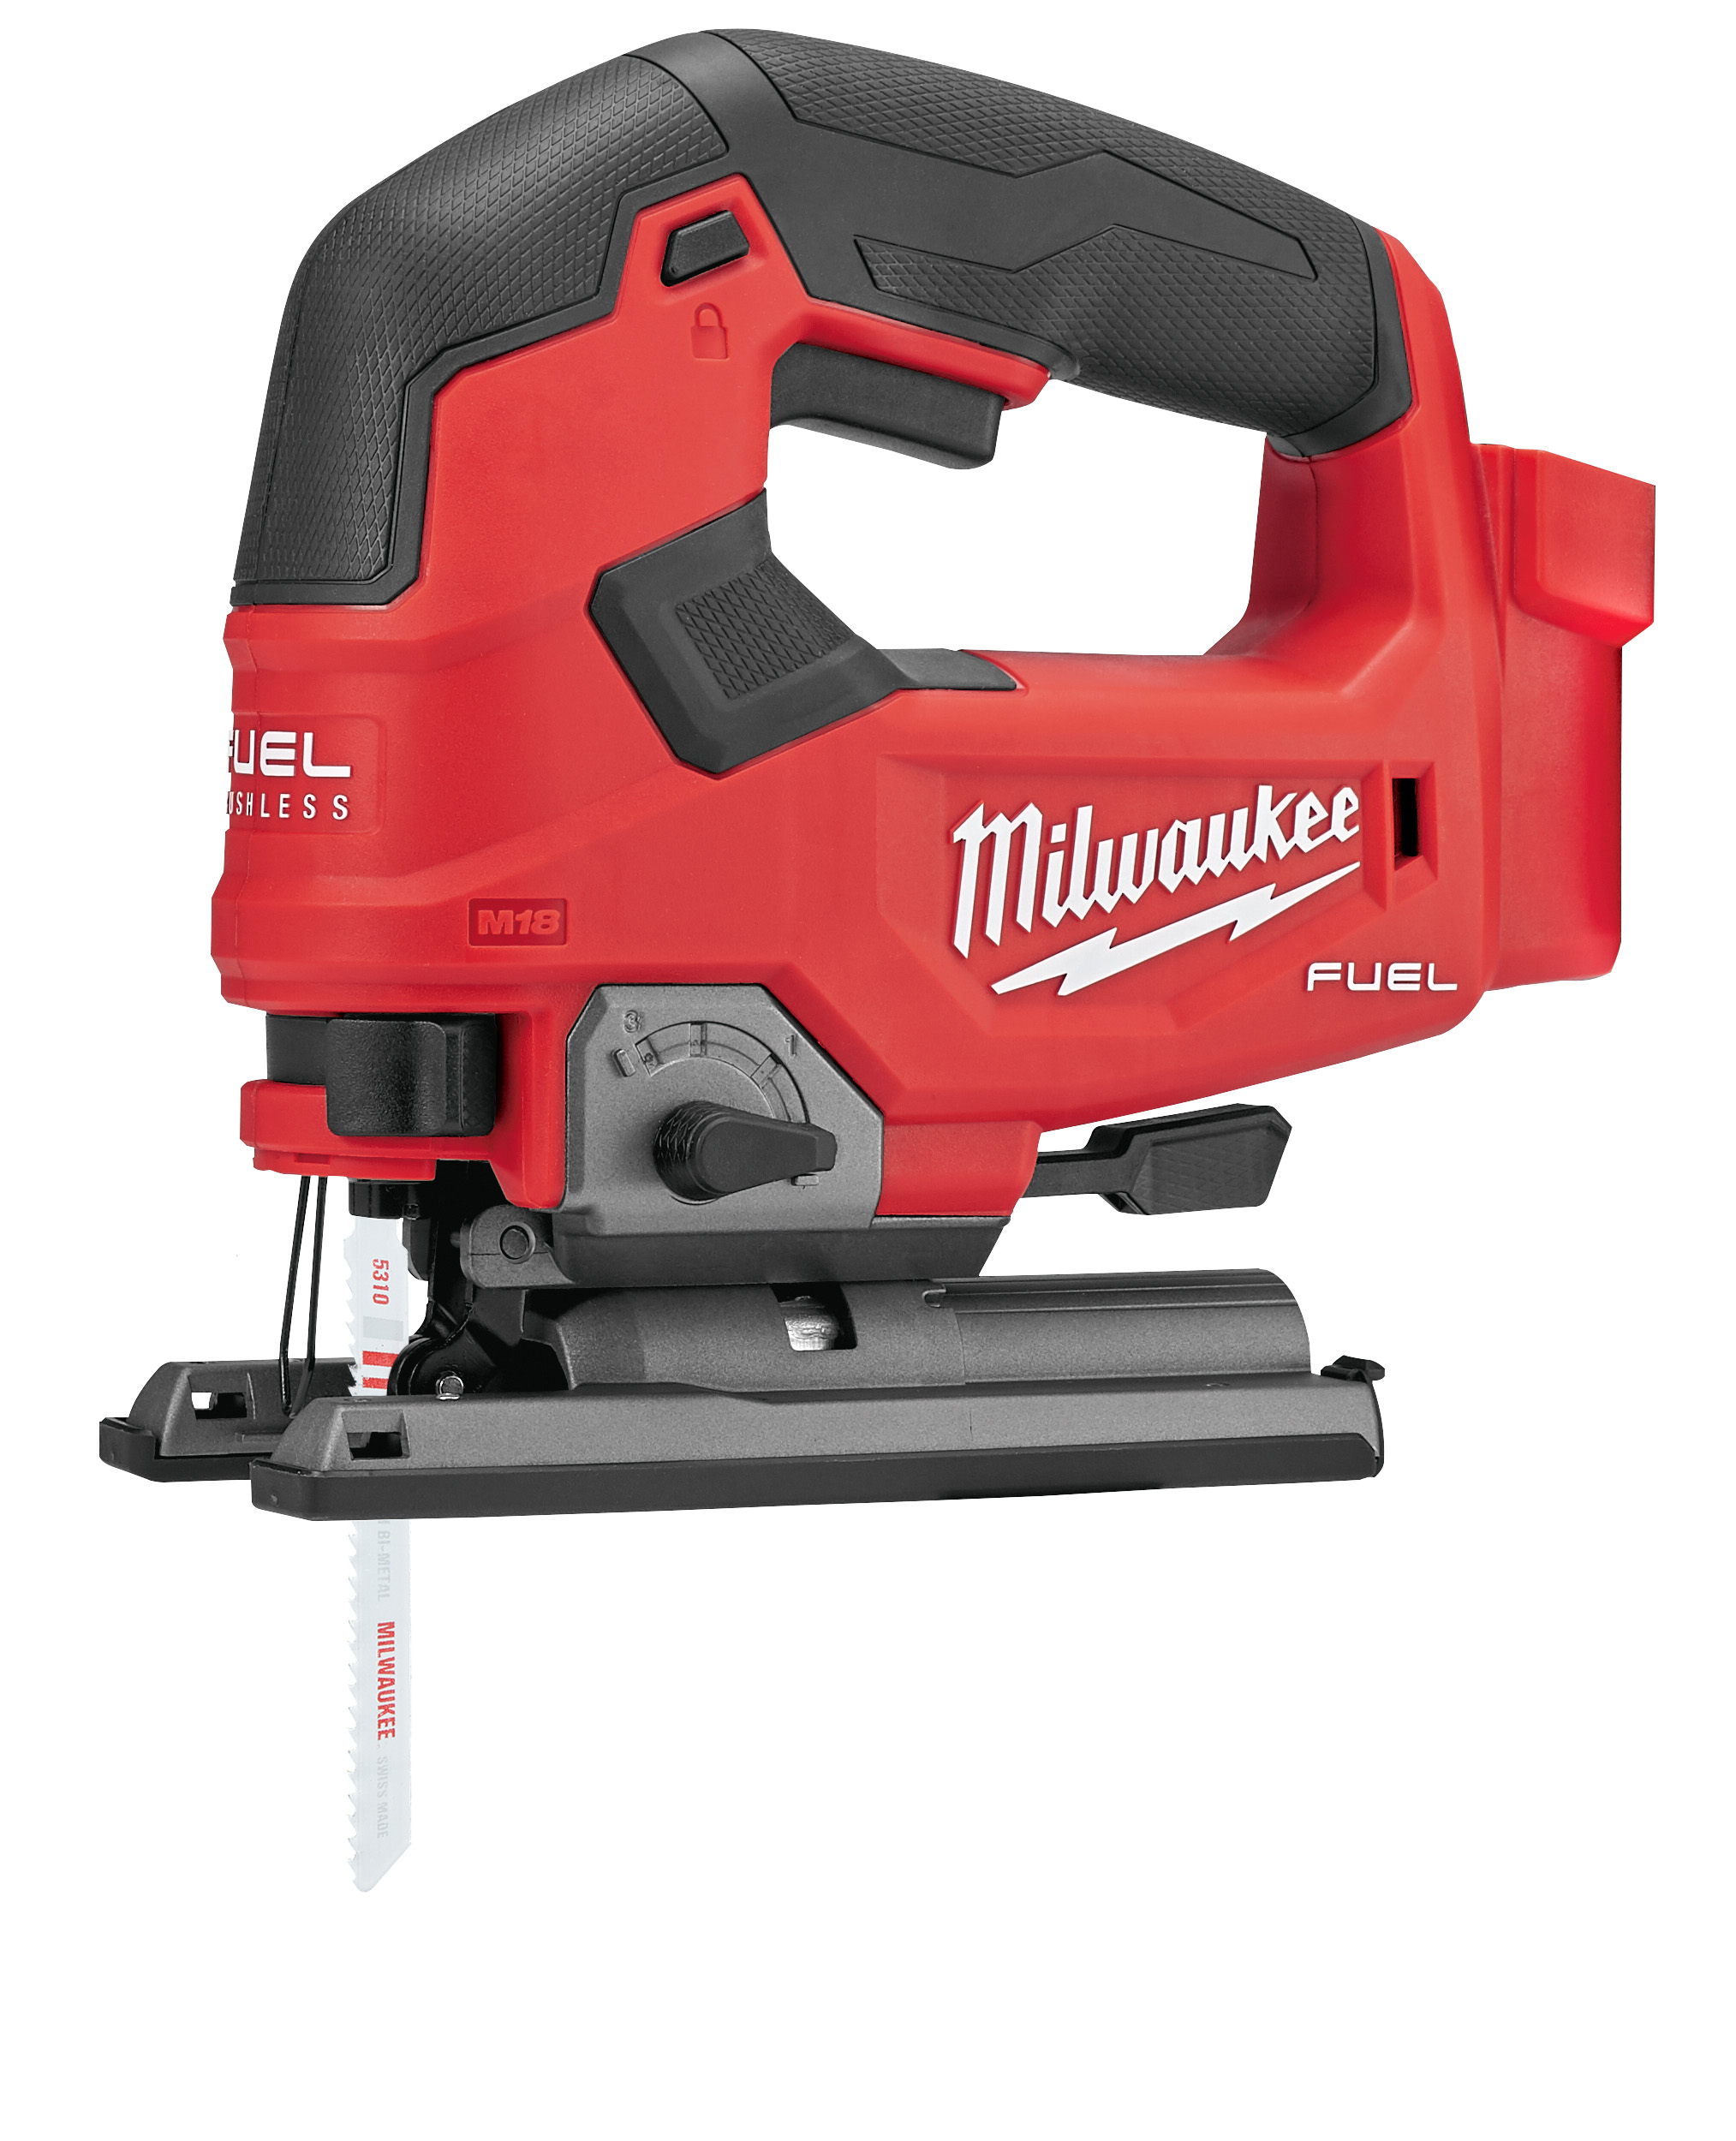 Milwaukee® 2737-20 M18 FUEL™ Cordless Jig Saw, 18 VDC, For Blade Shank: T-Shank, 9.13 in OAL, REDLITHIUM™ Battery, Tool Only